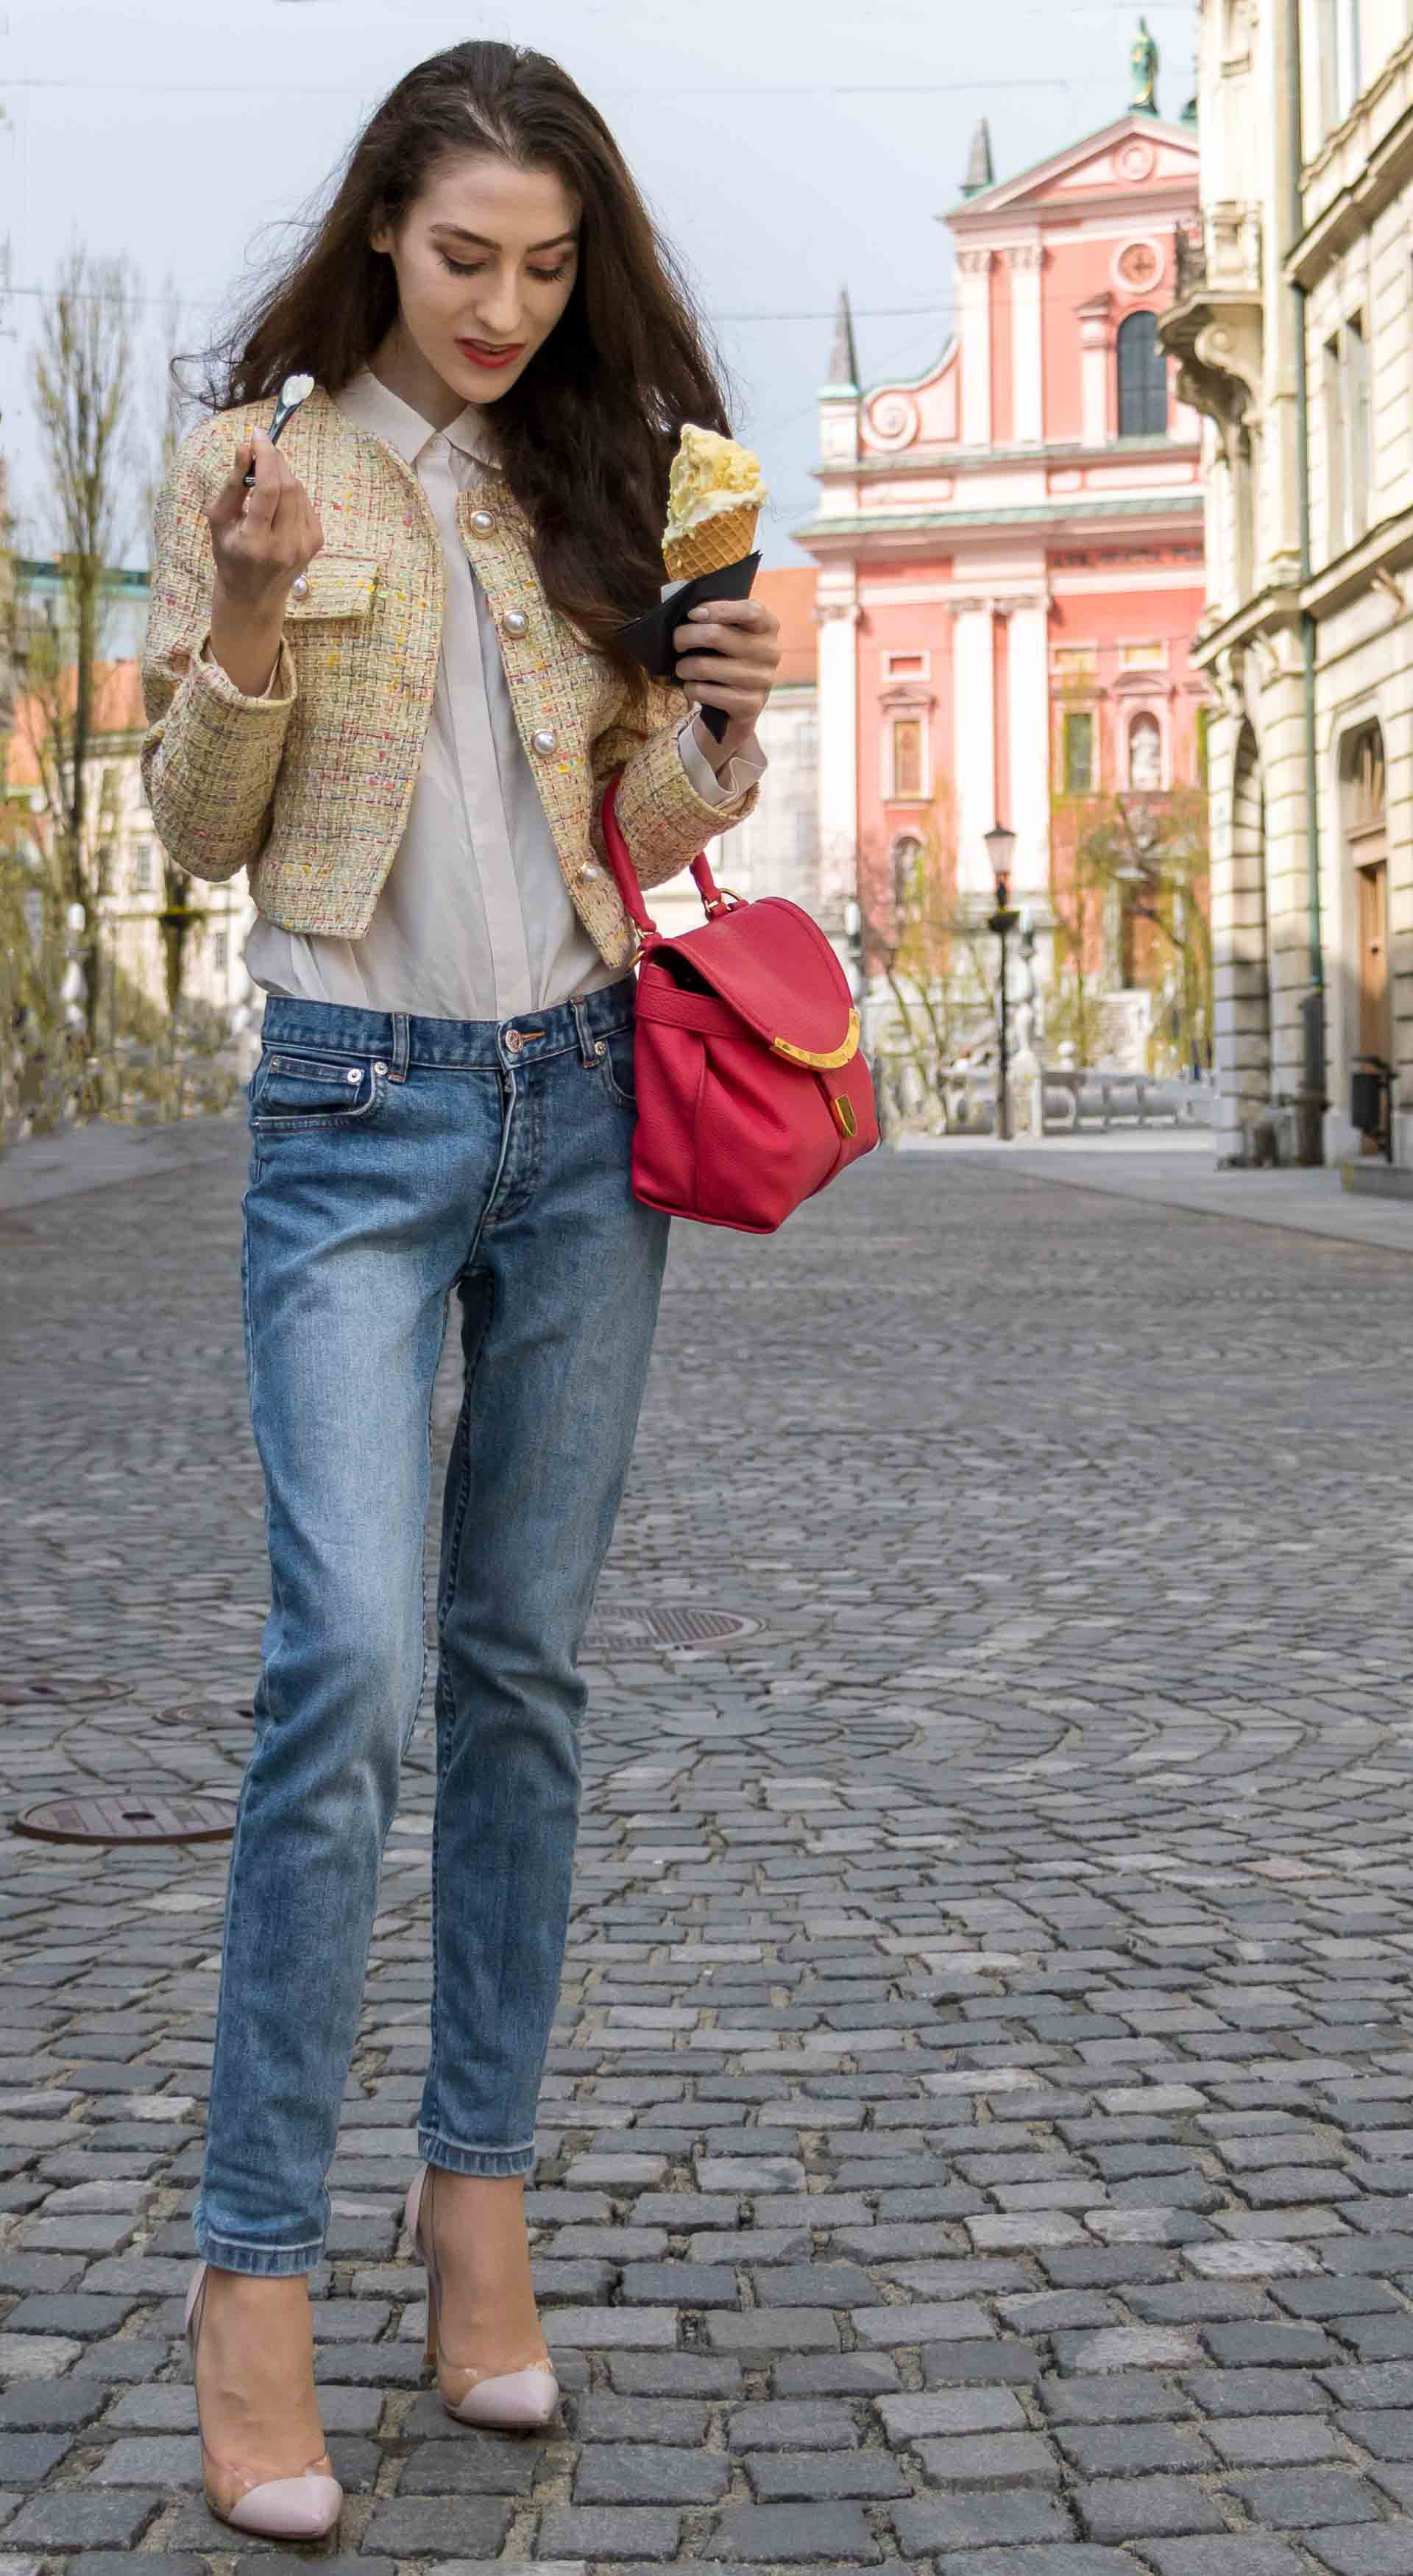 Veronika Lipar Fashion Blogger of Brunette from Wall Street dressed in chic casual everyday spring outfit, the yellow tweed jacket from Storets, blue jeans from A.P.C., blush Gianvito Rossi plexi pumps, pink top handle bag and organza white shirt on the street licking cone ice cream